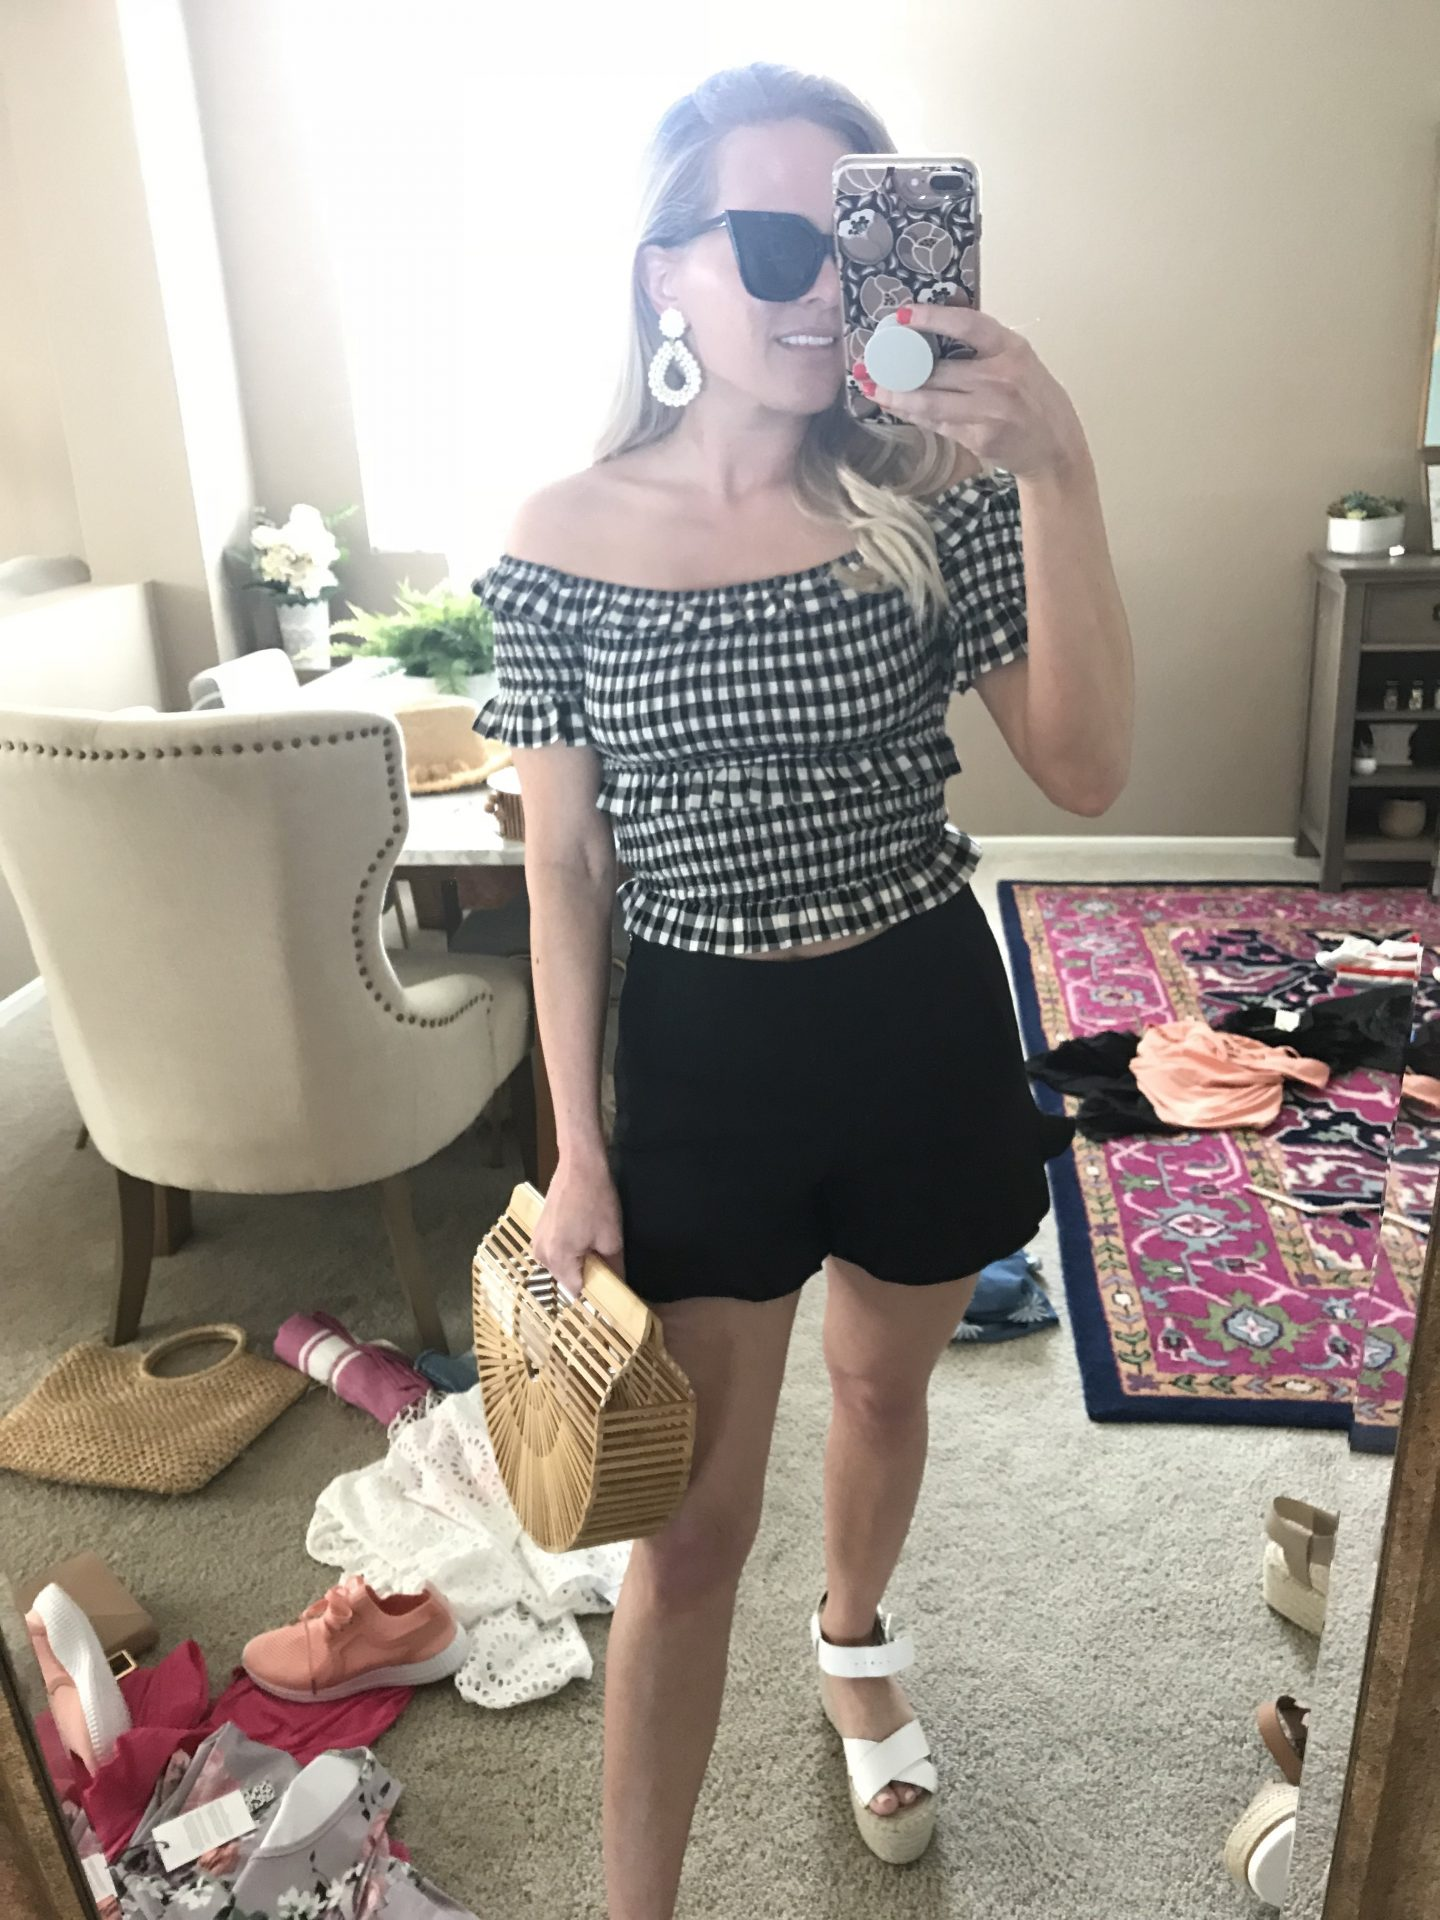 Instagram Fashion on Instagram Stories by popular Orange County fashion blogger Dress Me Blonde